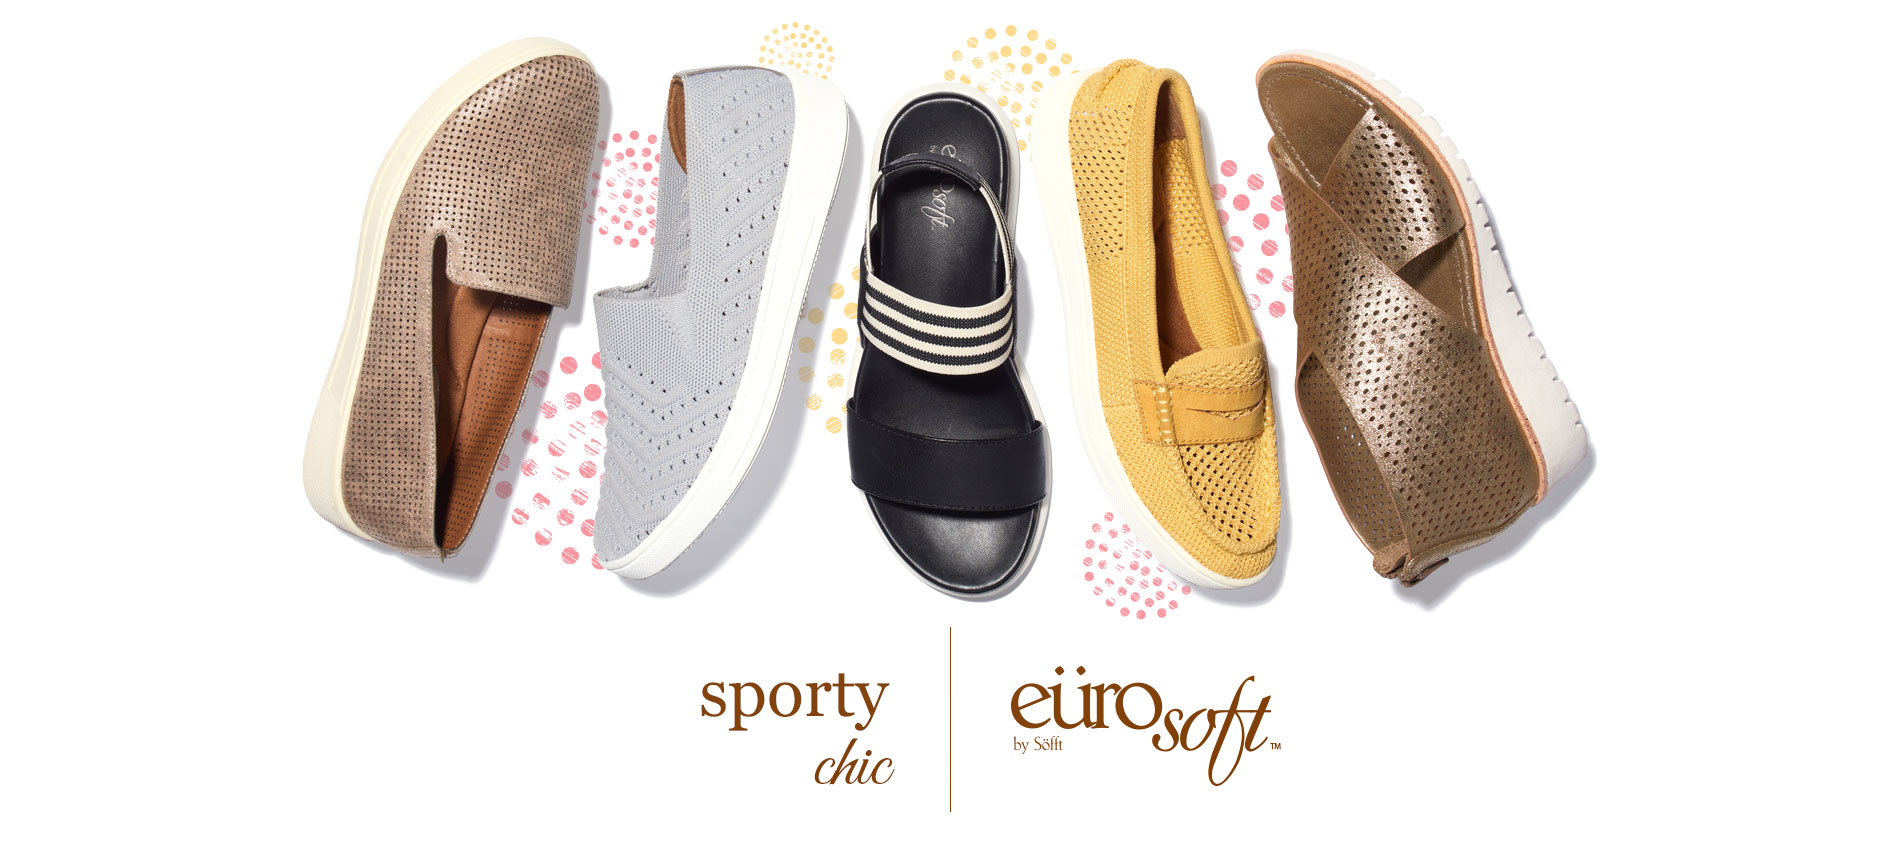 Sporty Chic. Eurosoft by Sofft. Shop All Styles